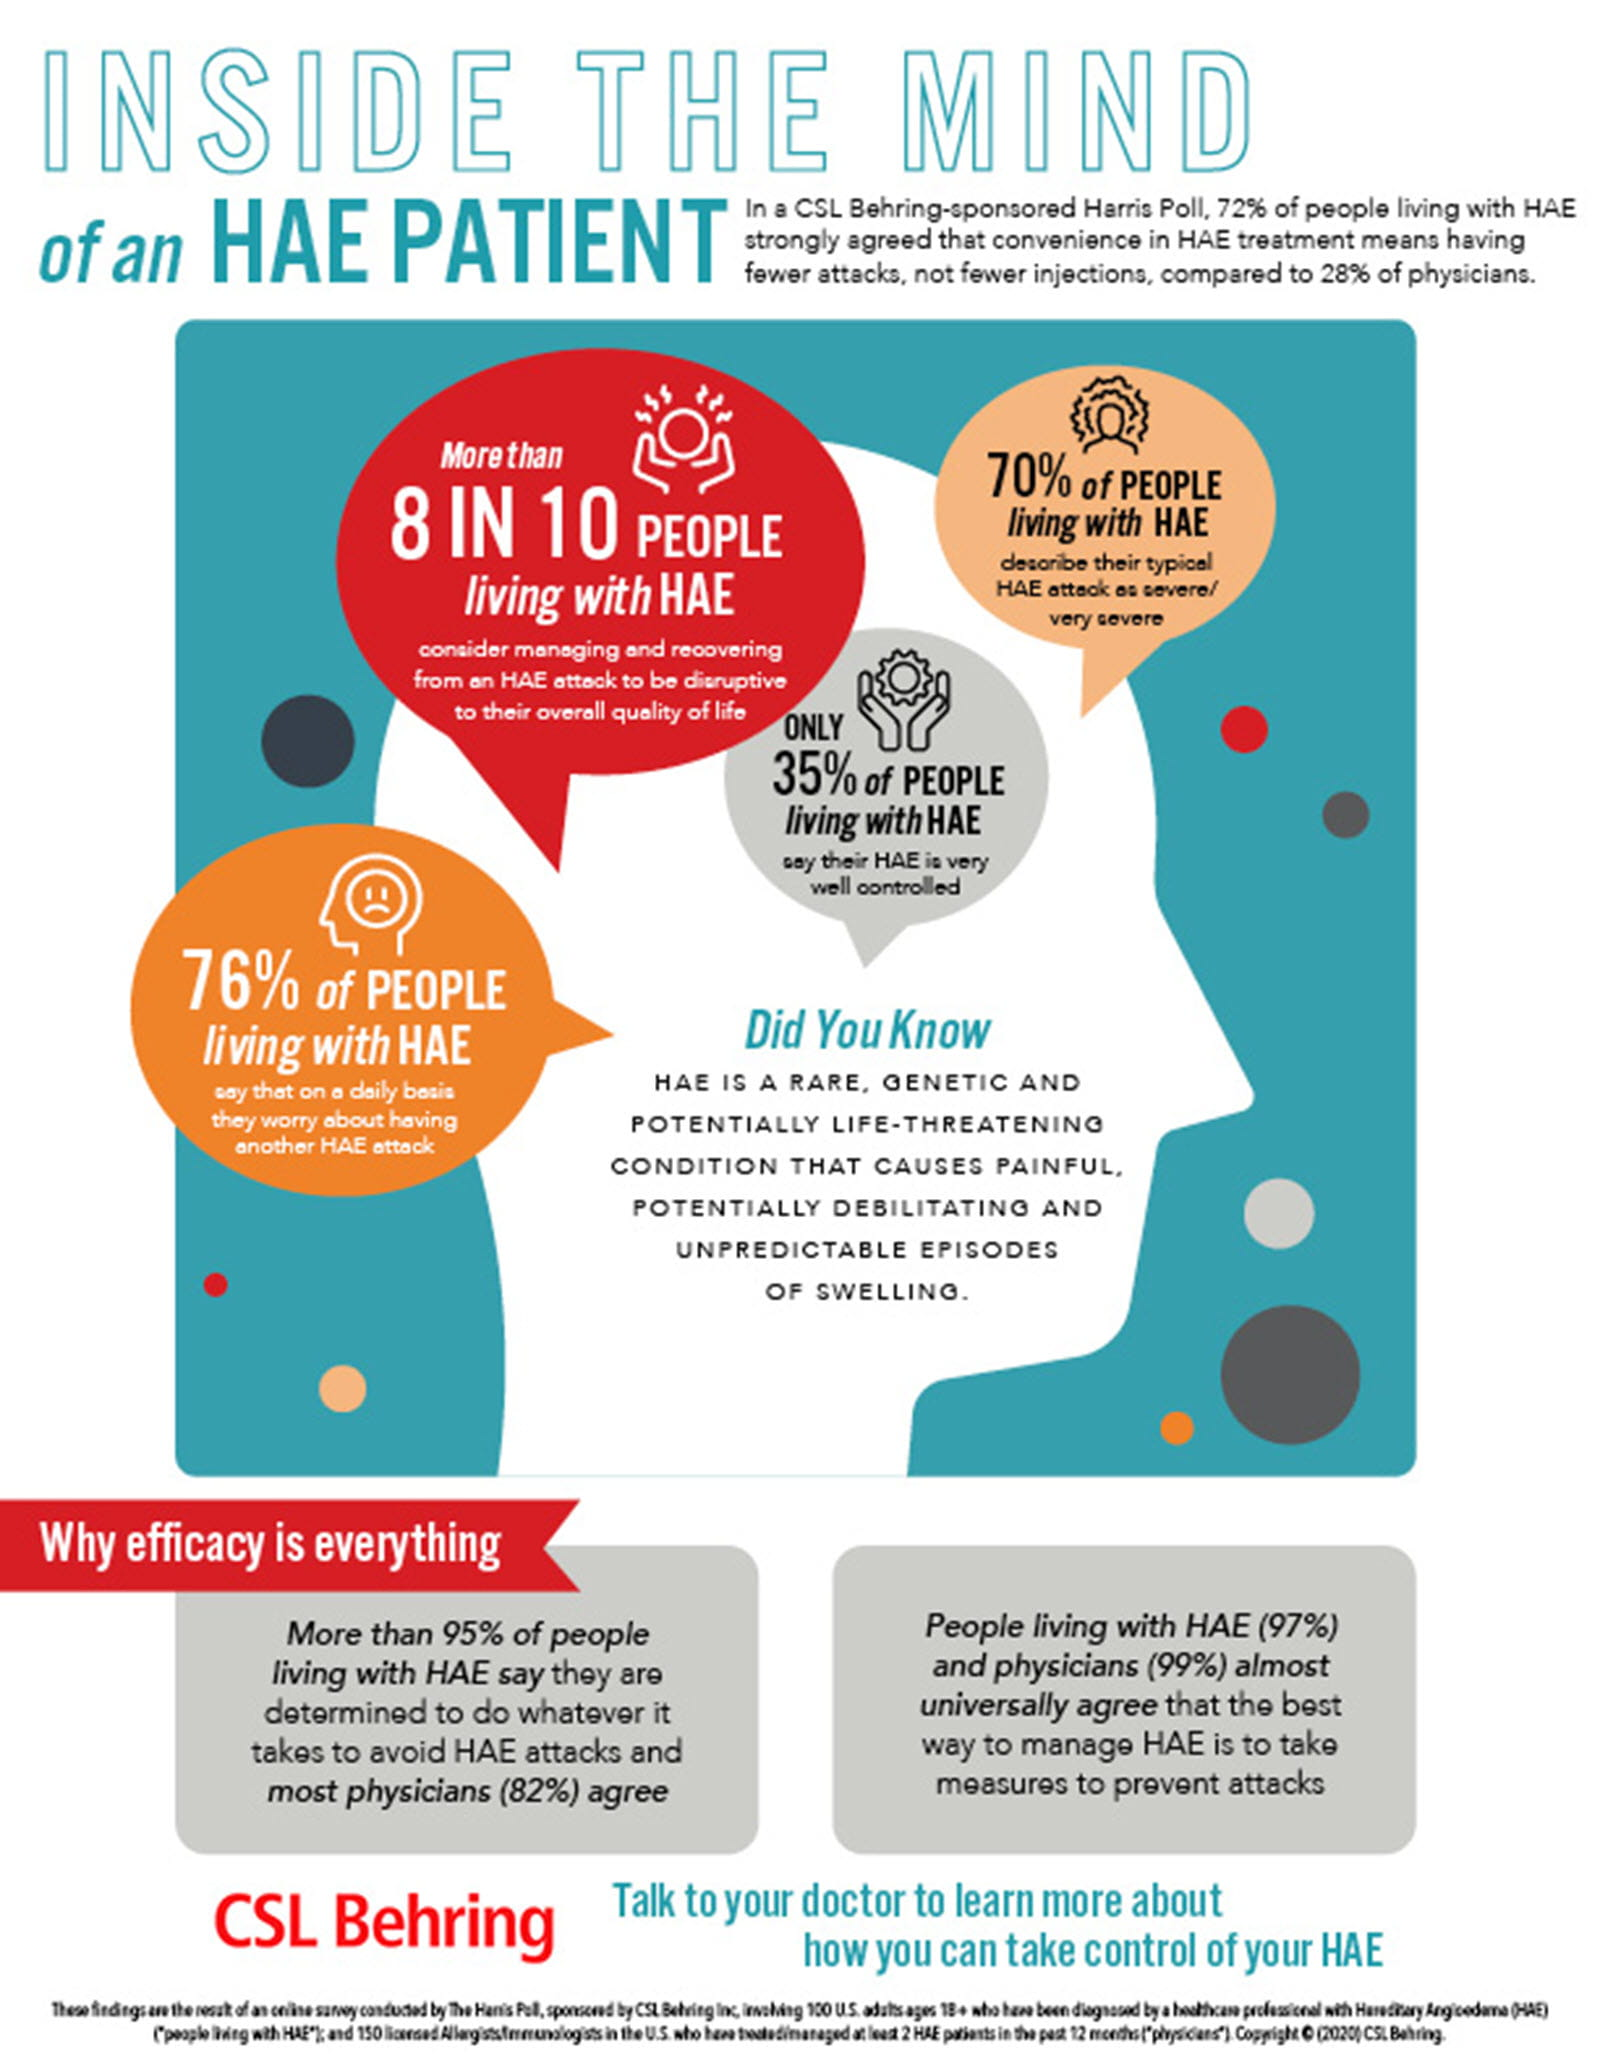 Infographic that says only 35% of HAE patients say their attacks are well controlled